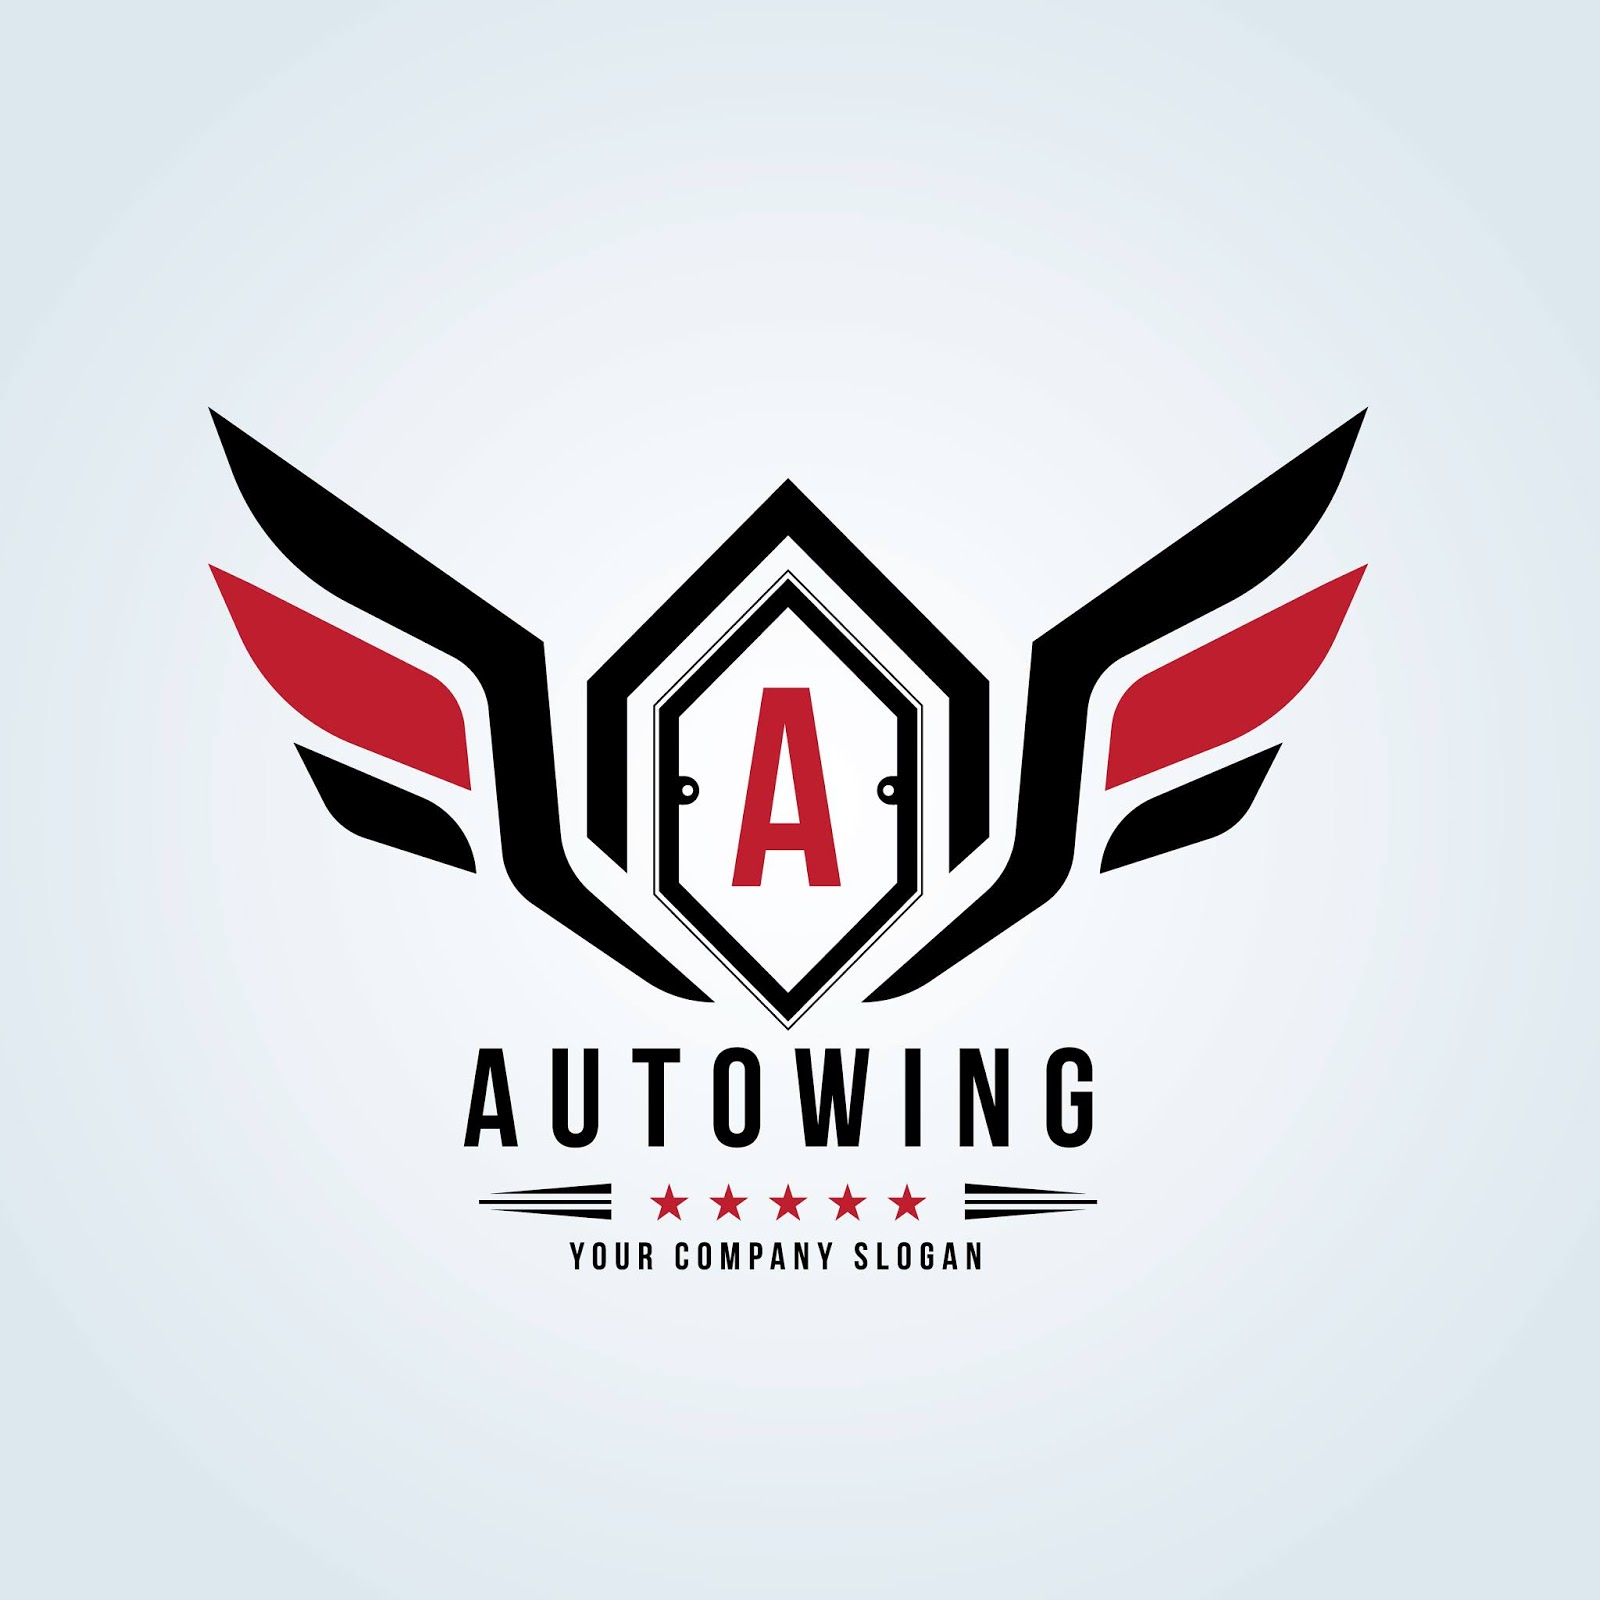 Car Automotive Logo With Eagle Wing Symbol Logo	 Free Download Vector CDR, AI, EPS and PNG Formats